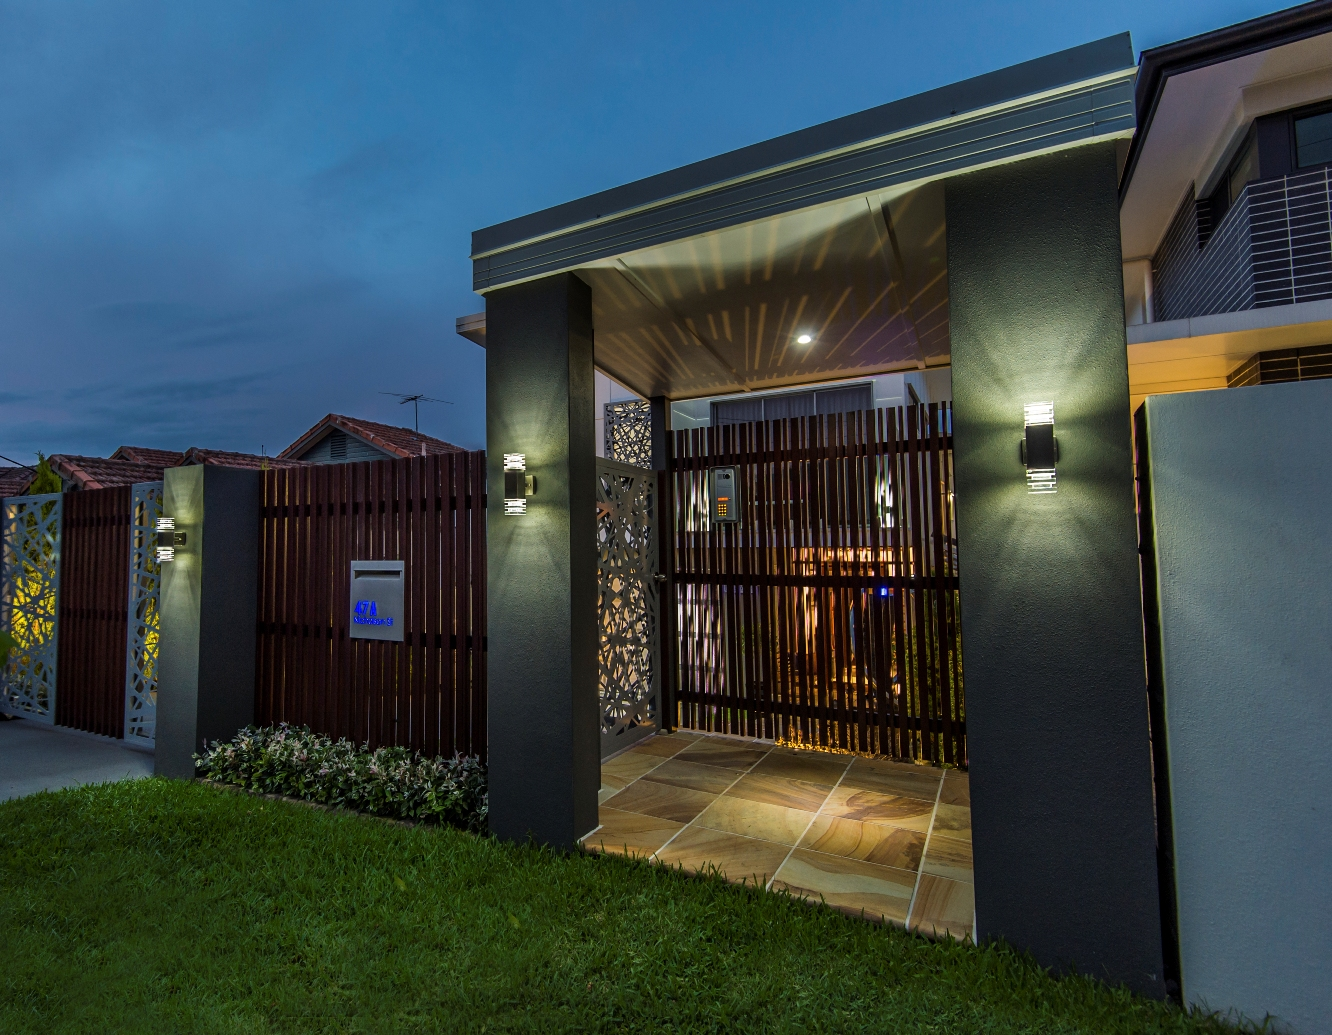 modern lighting design houses. modernarchitecturalnewhomebrisbanegatehousescreeninglighting designermetaltimbersecurityjpg modern lighting design houses